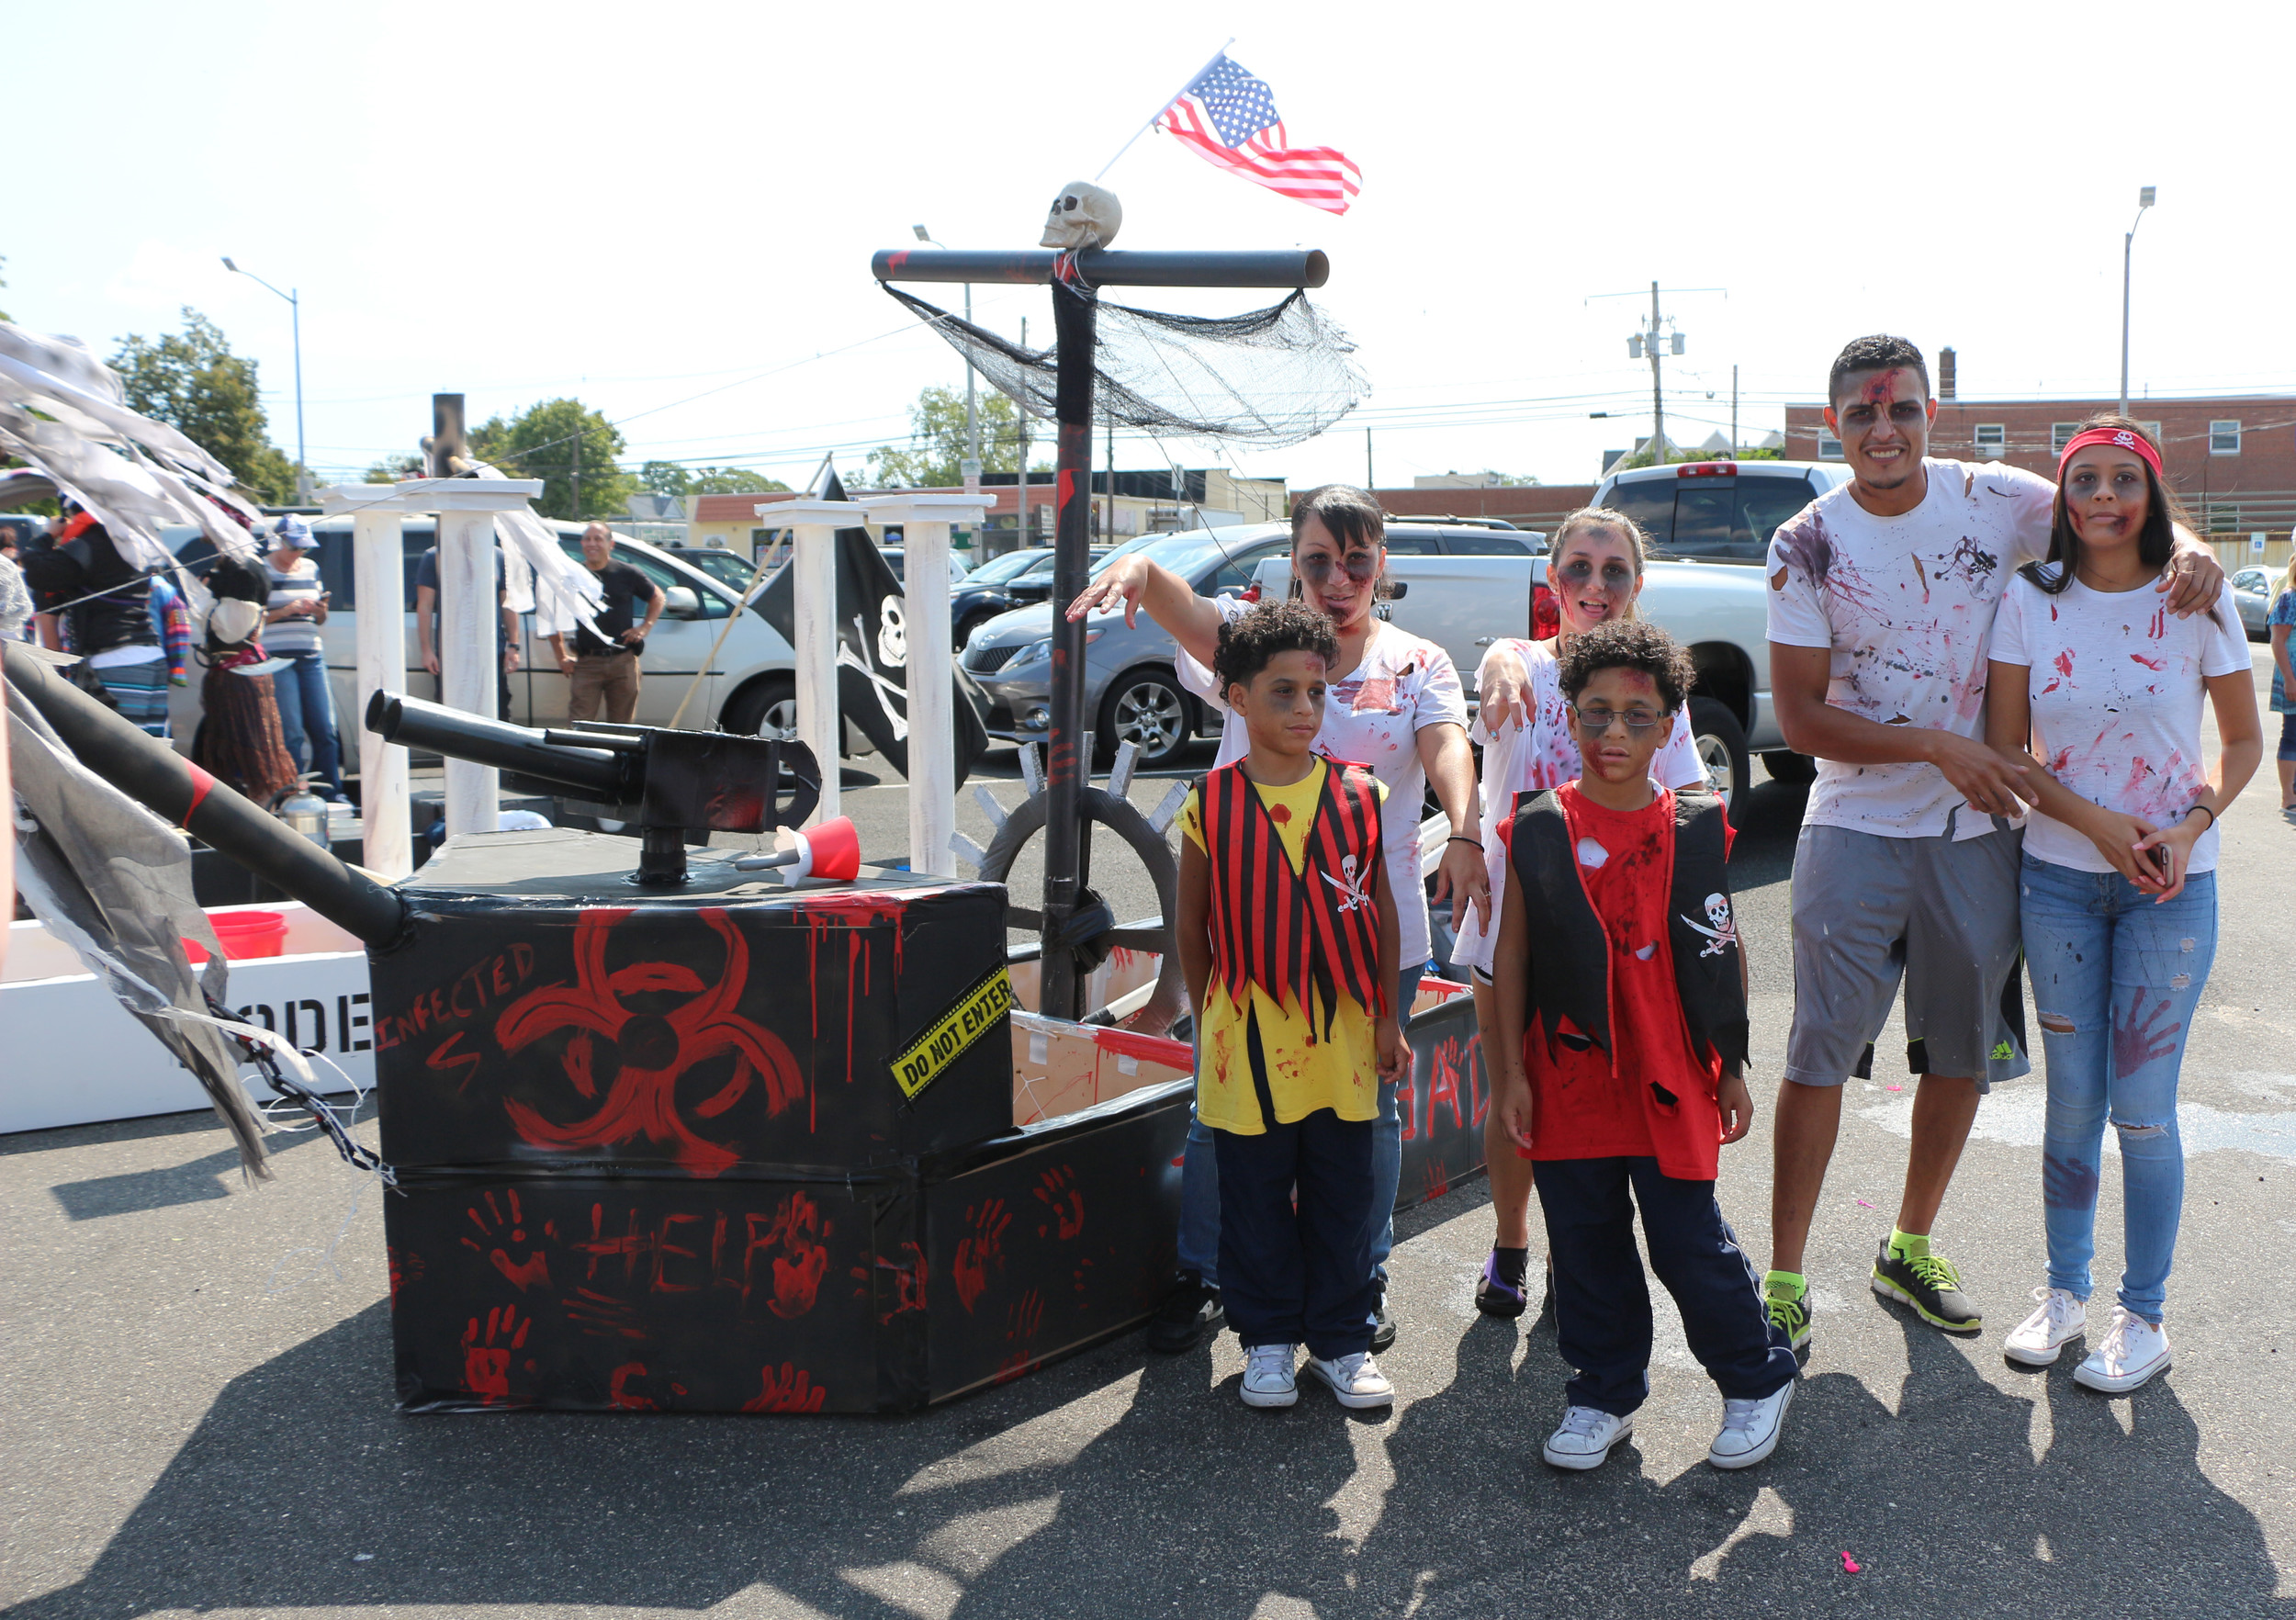 Team Ride or Die, dressed as zombies, with their homemade pirate ship. From left were Angel Magana, 7; his brother, Justin, 8; their sisters, Angelique, 14; and Michelle, 17; and their parents, Sergio and Samantha.